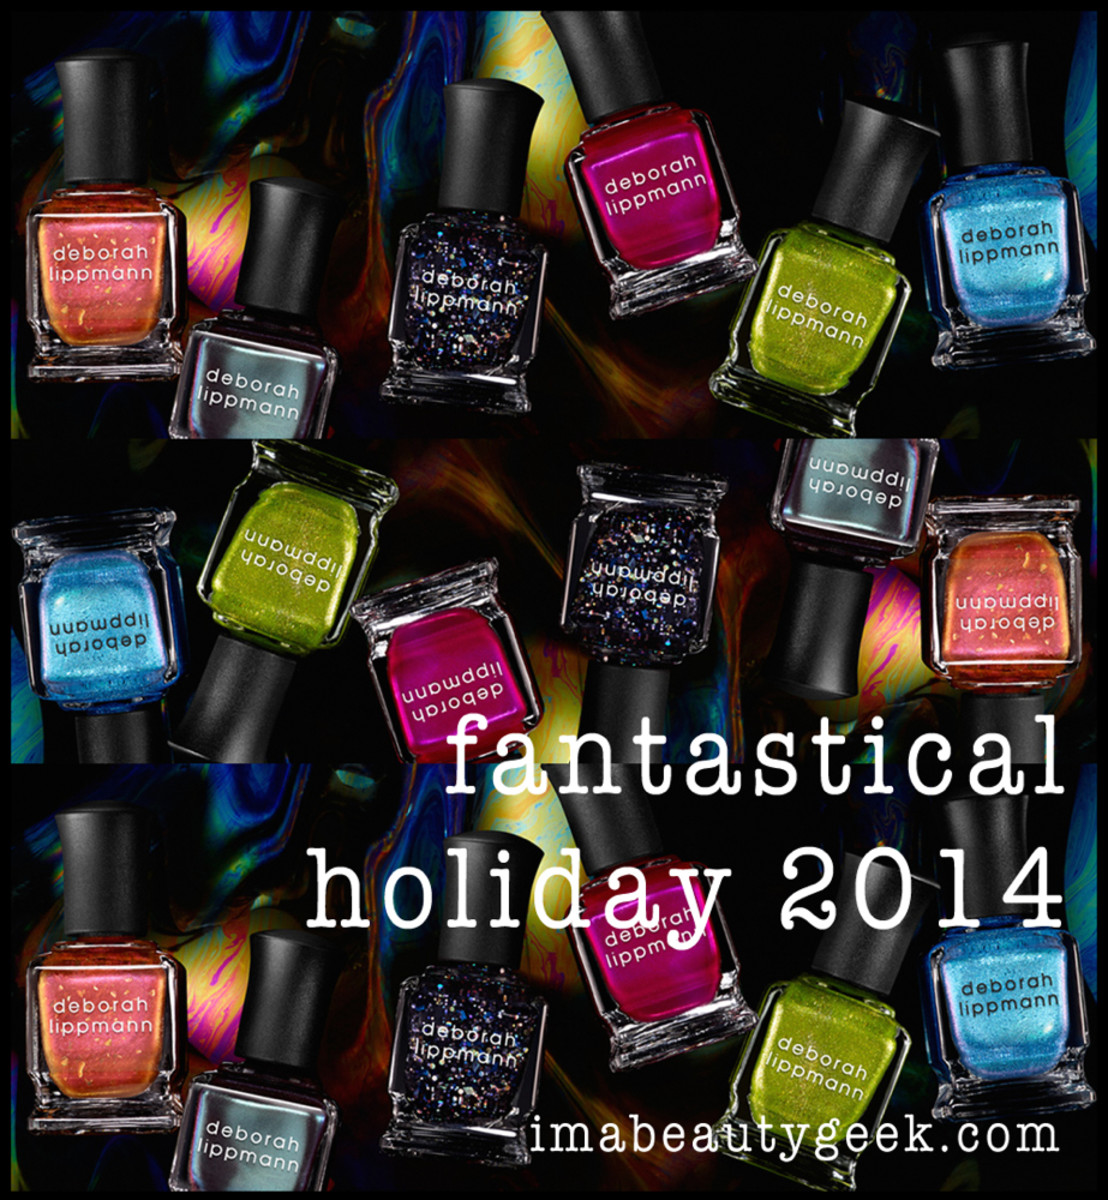 Deborah Lippmann Fantastical Holiday 2014 Header